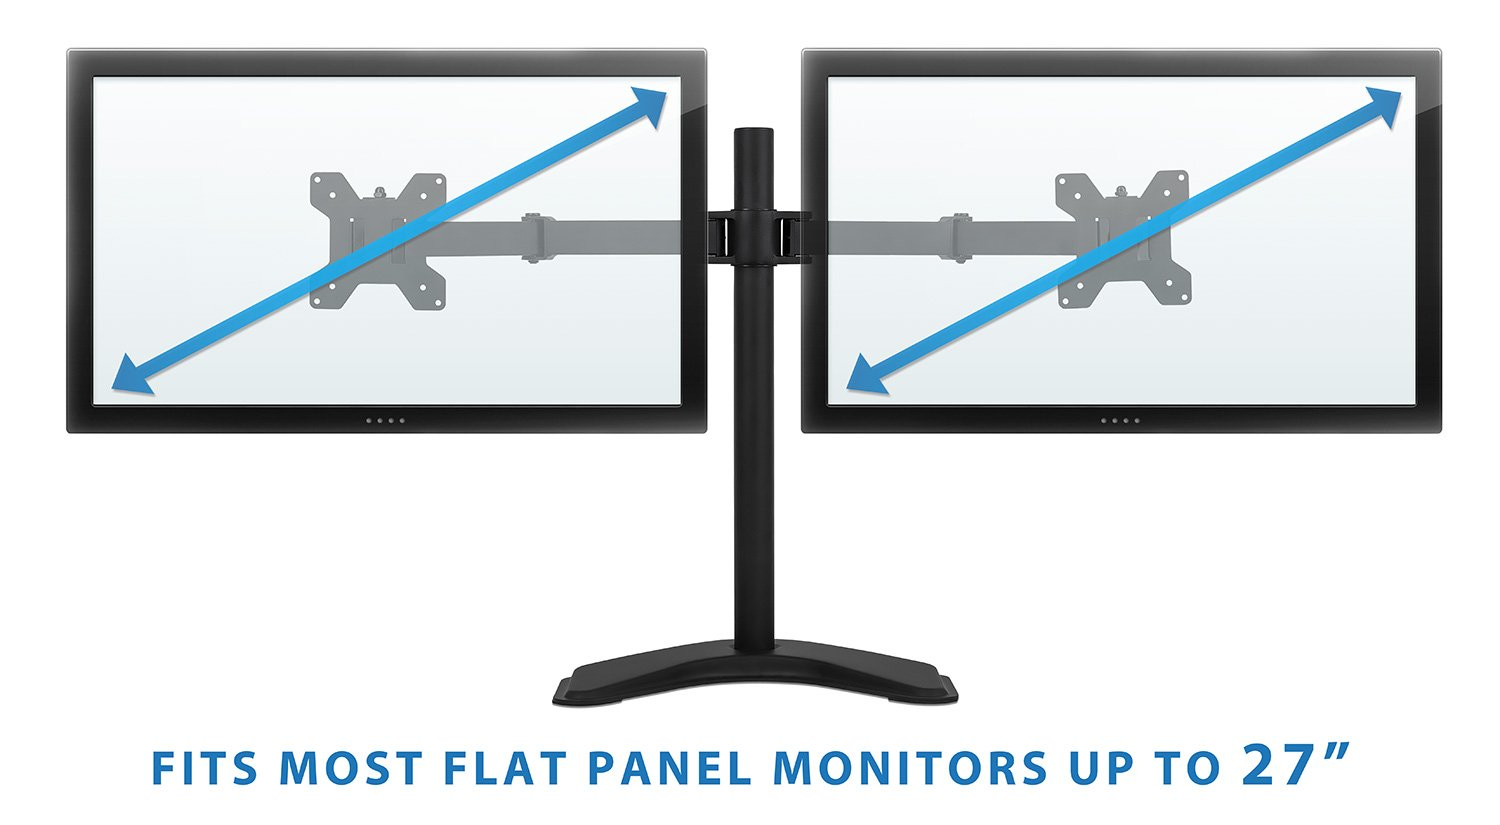 Dual Monitor Desk Stand Mount for LCD LED Computer Displays Two Articulating Arms Clamp Desk Installation Fits up to 27 Inch Screens Heavy-Duty 44 Lb Capacity VESA 75 and 100 Mount-It